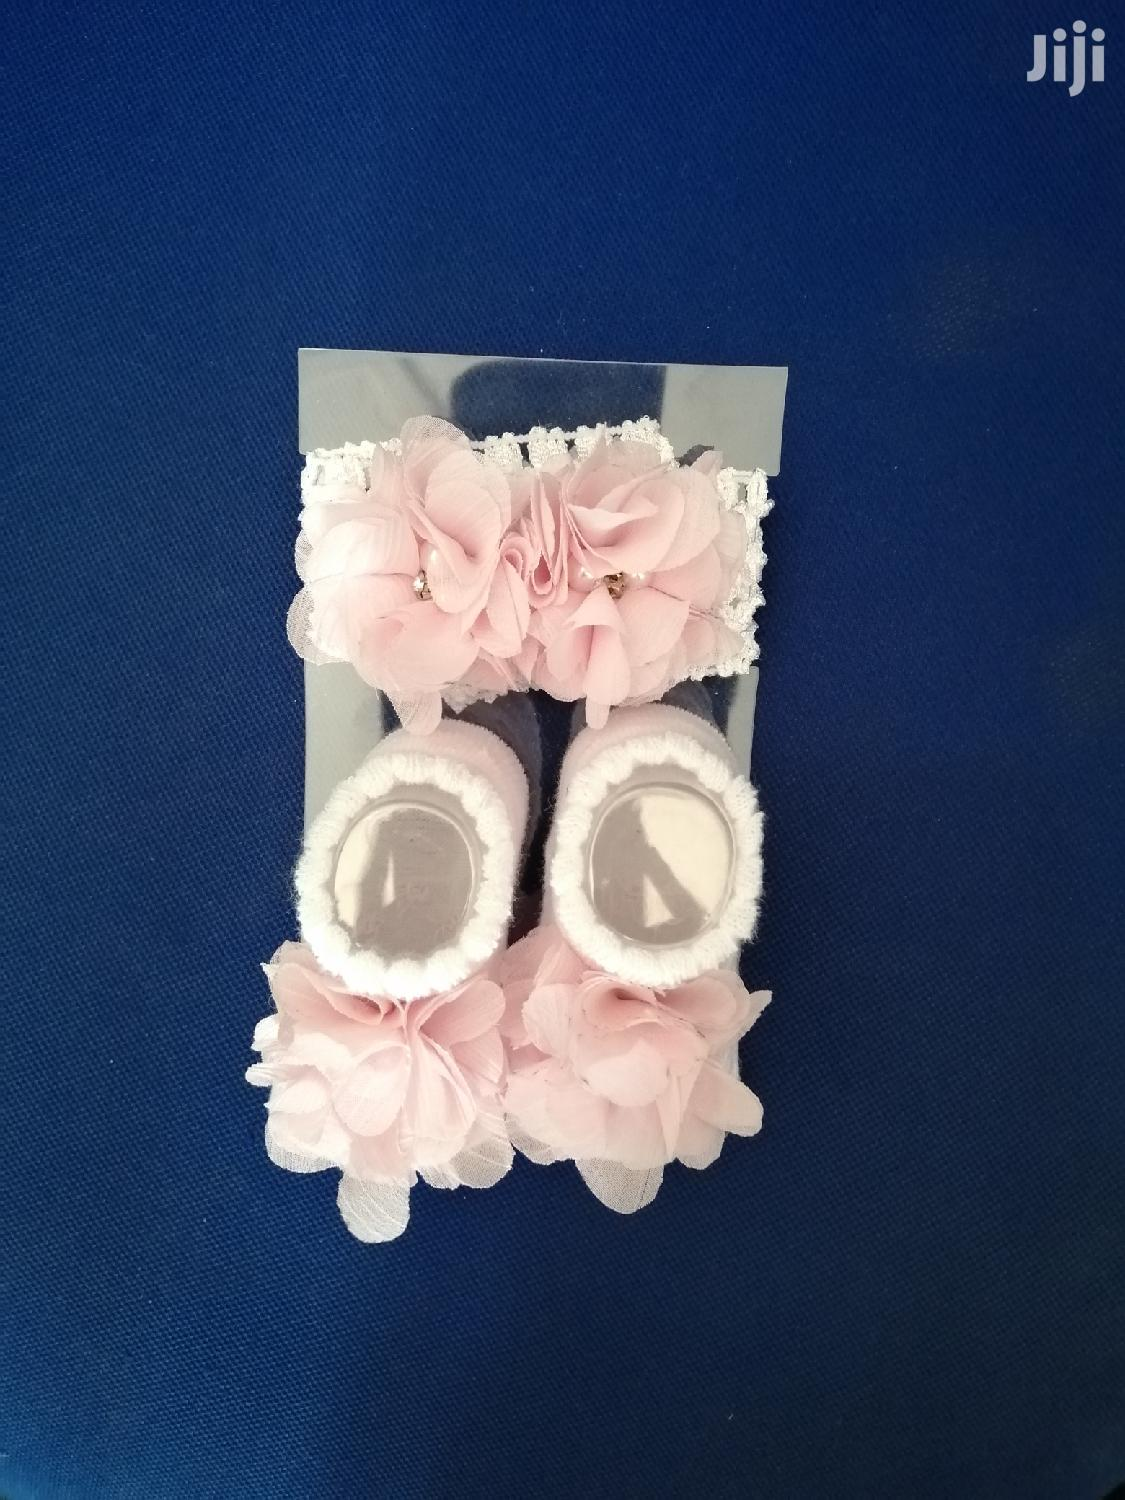 Ribbon And Baby Shoe Socks For 0 To 12 Months